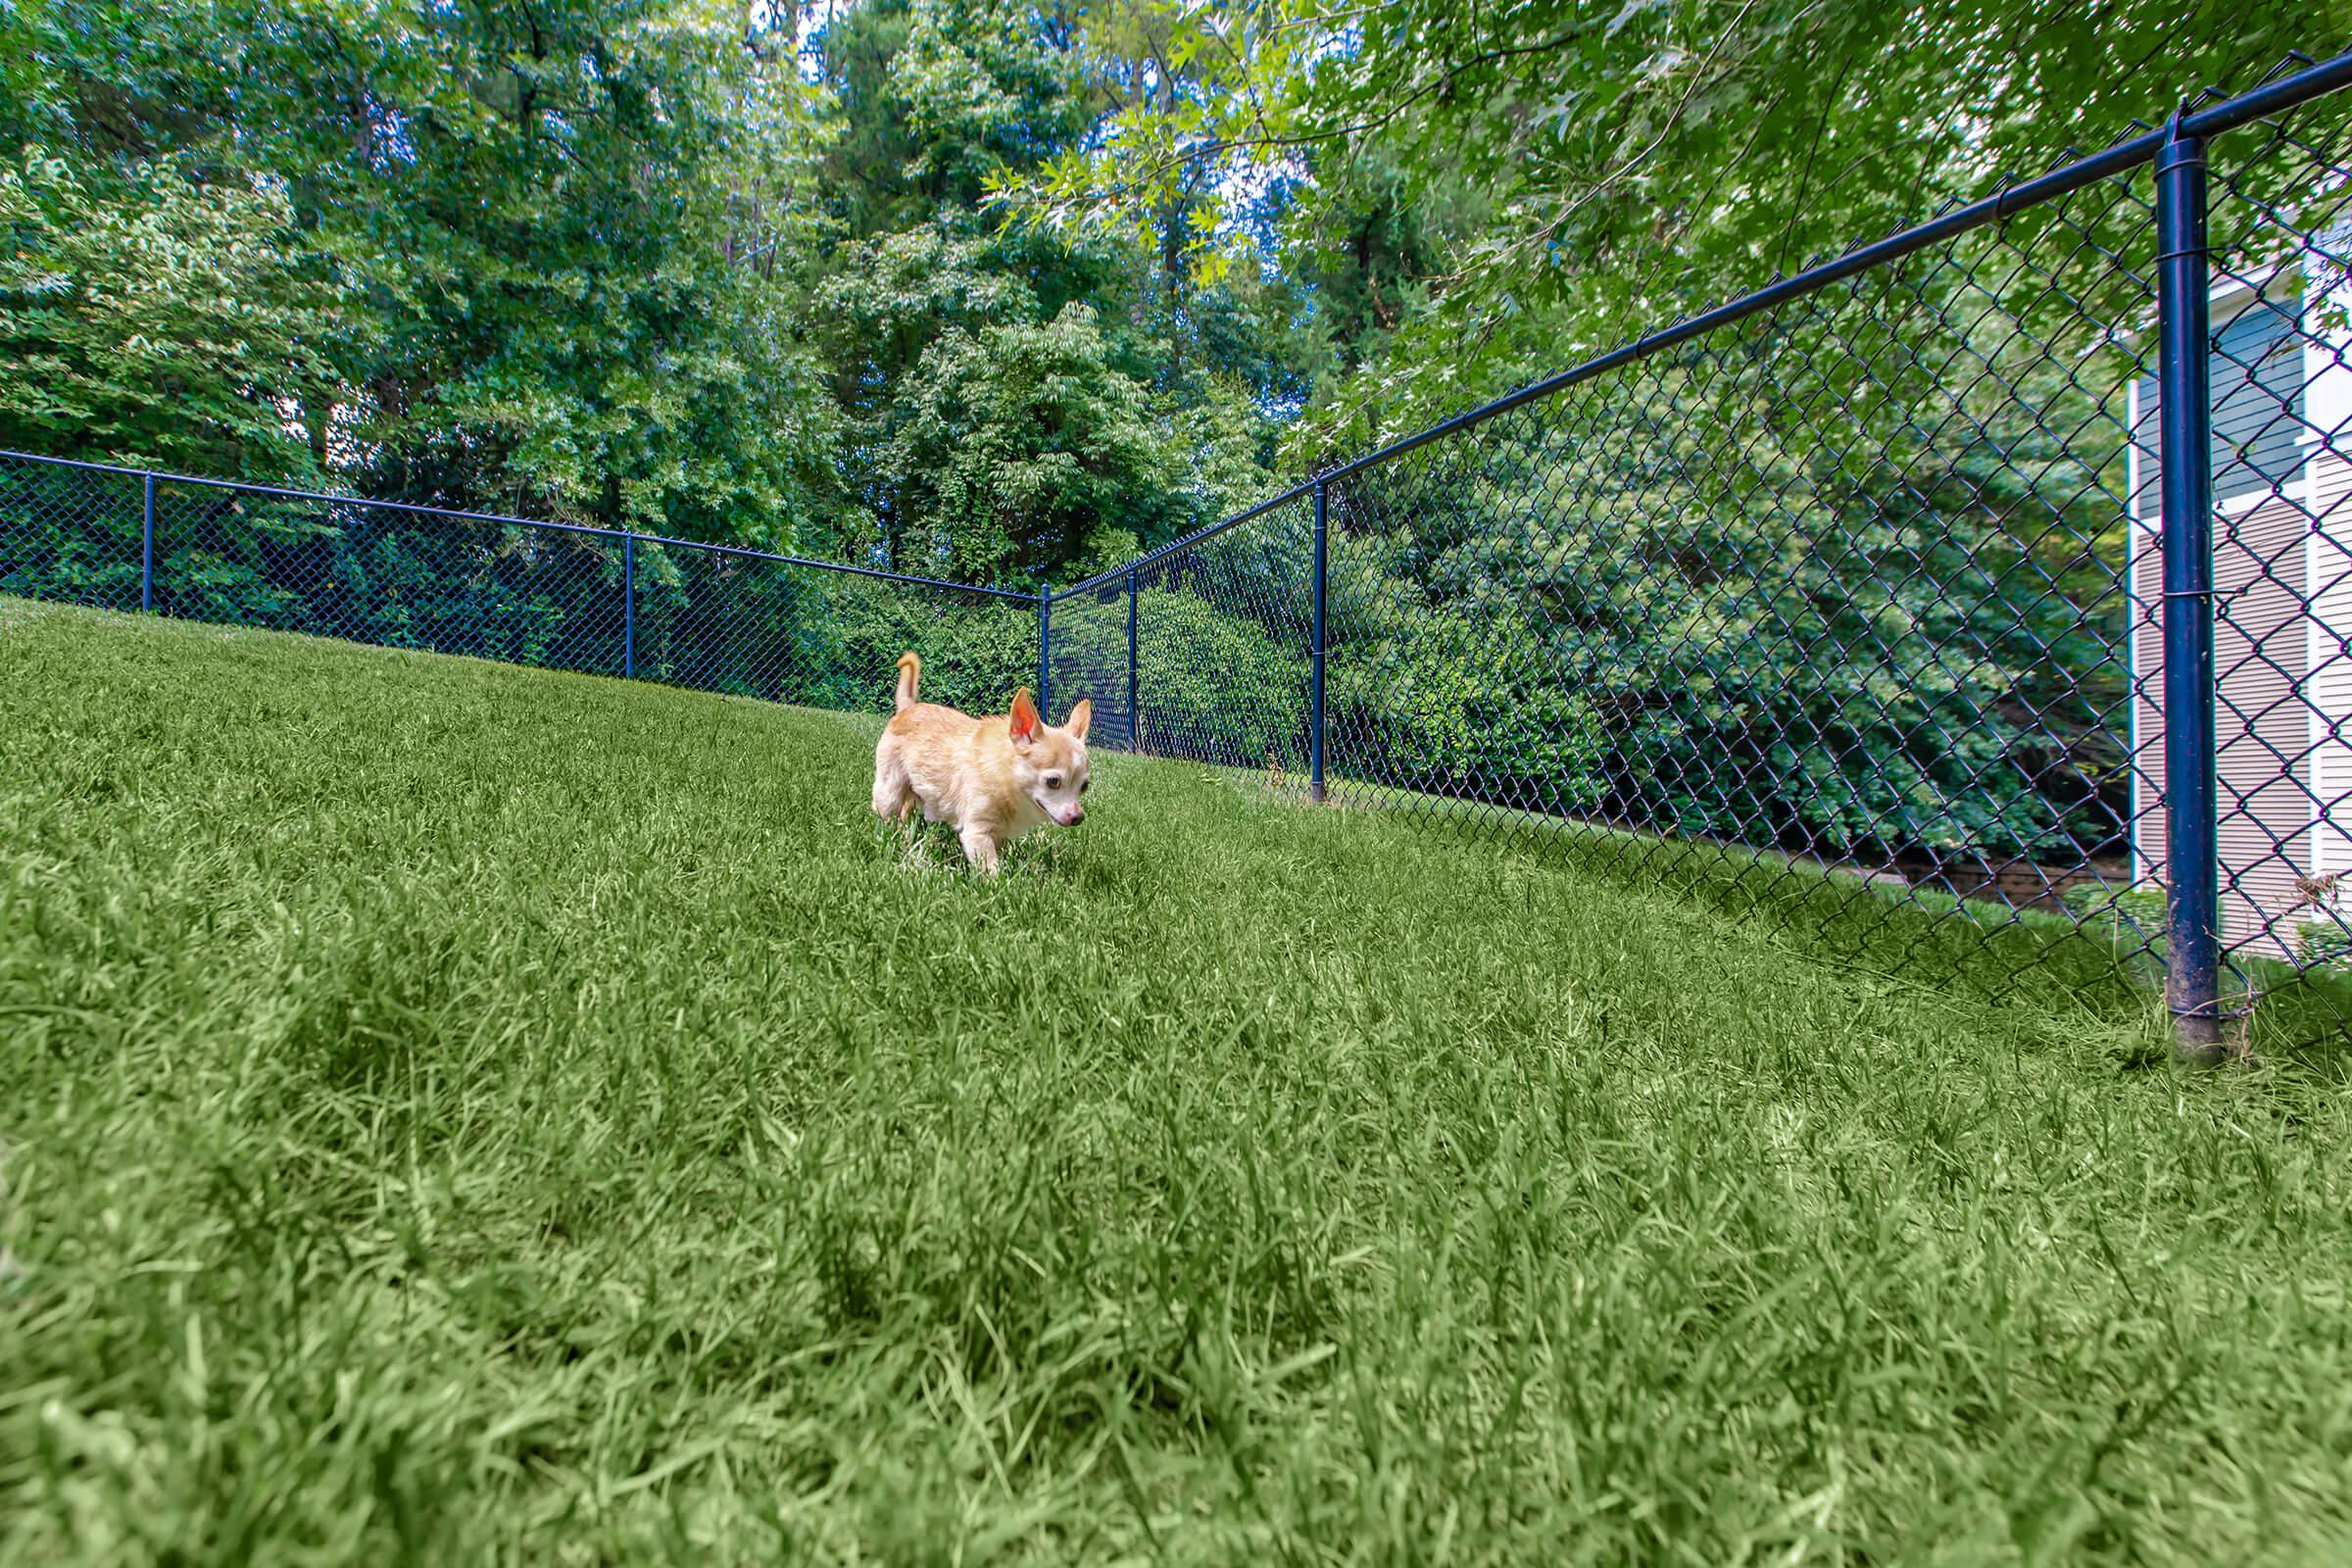 a dog in a fenced in field